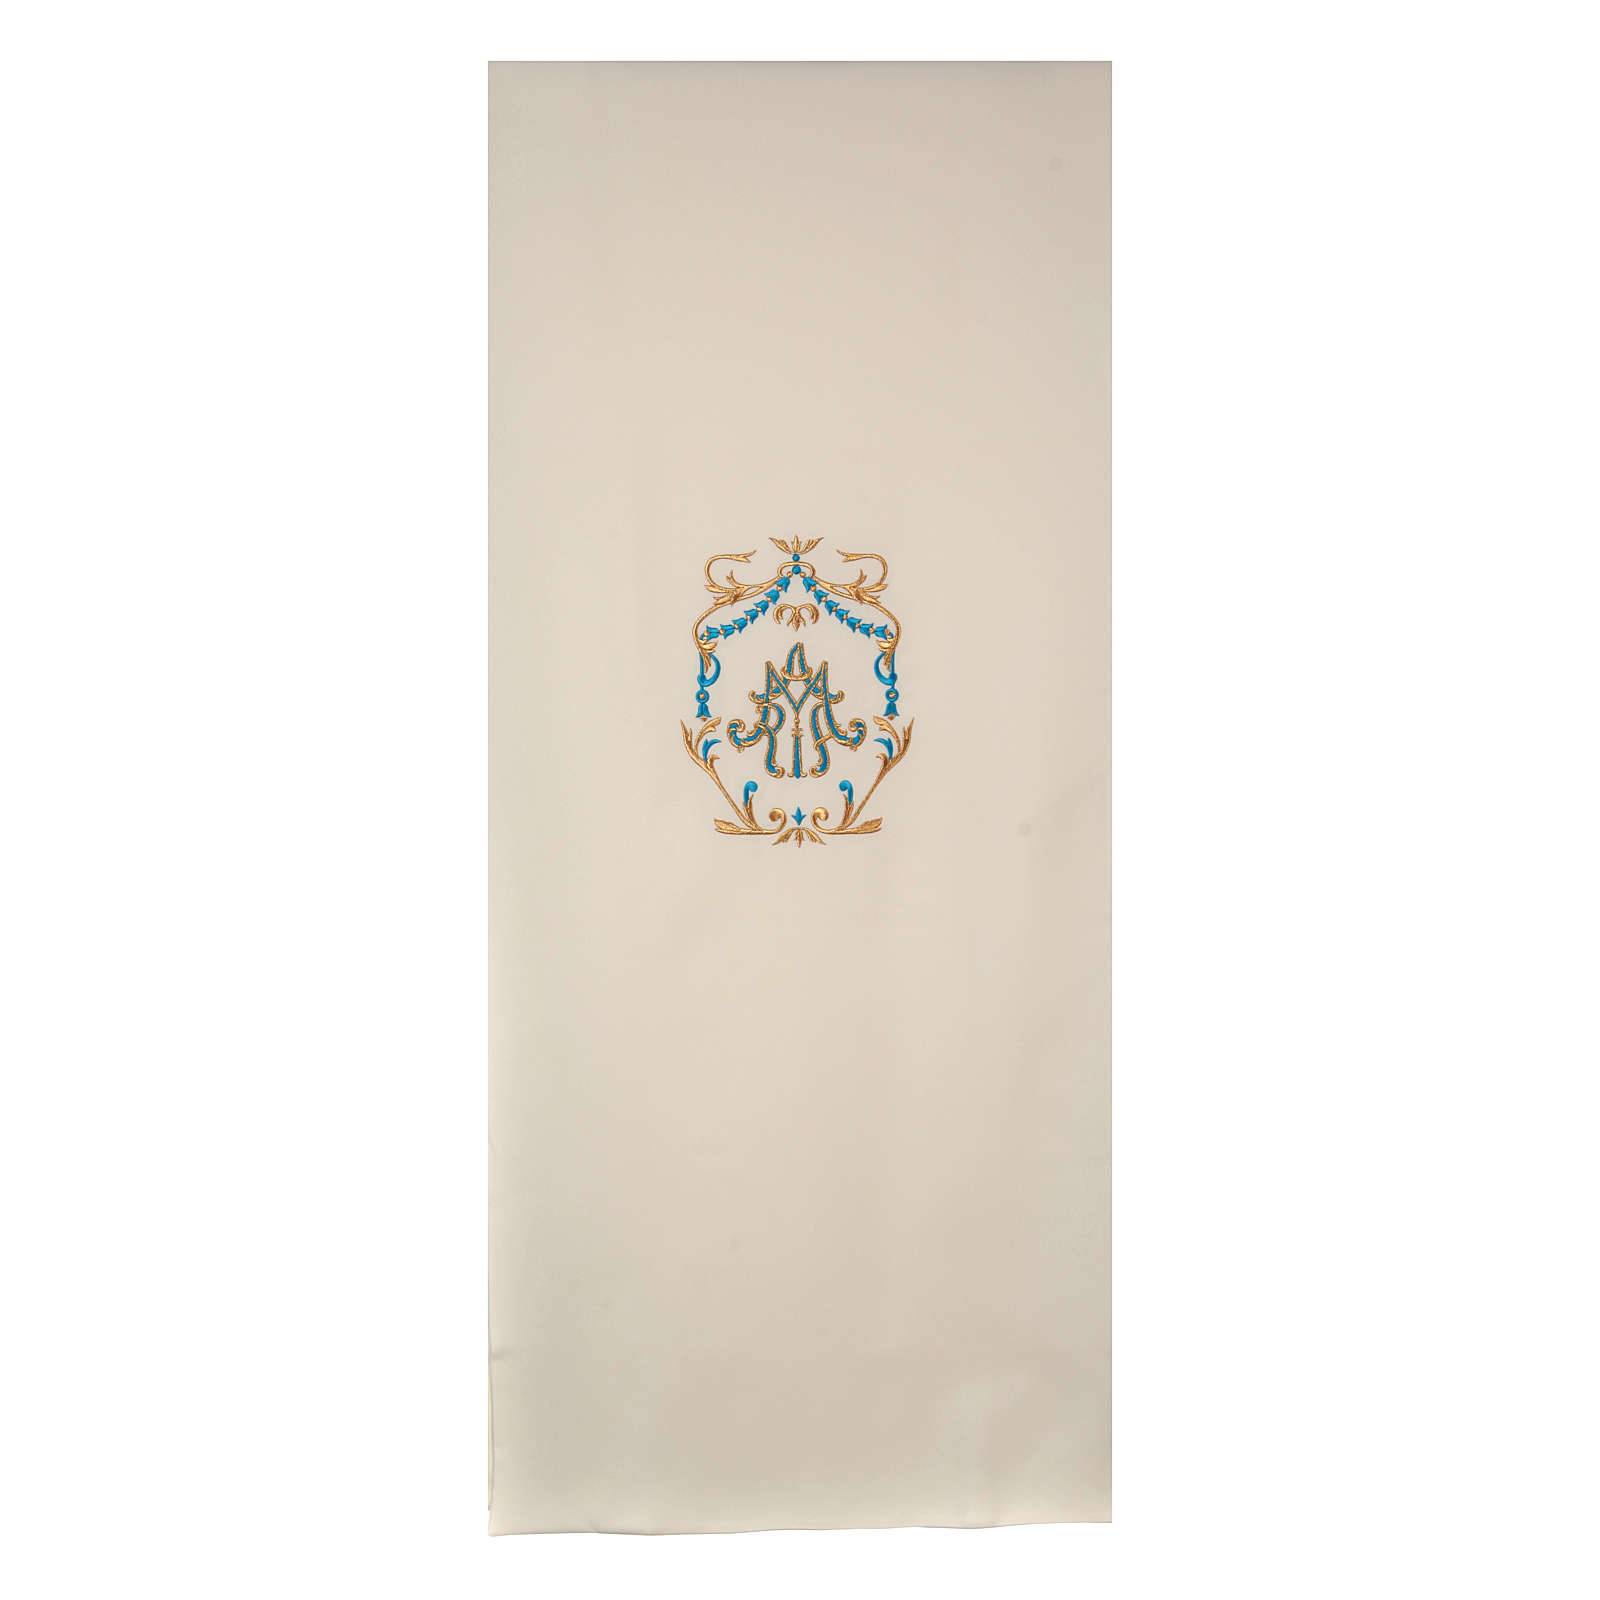 Lectern cover gold and light blue embroideries, Maria spelled 4